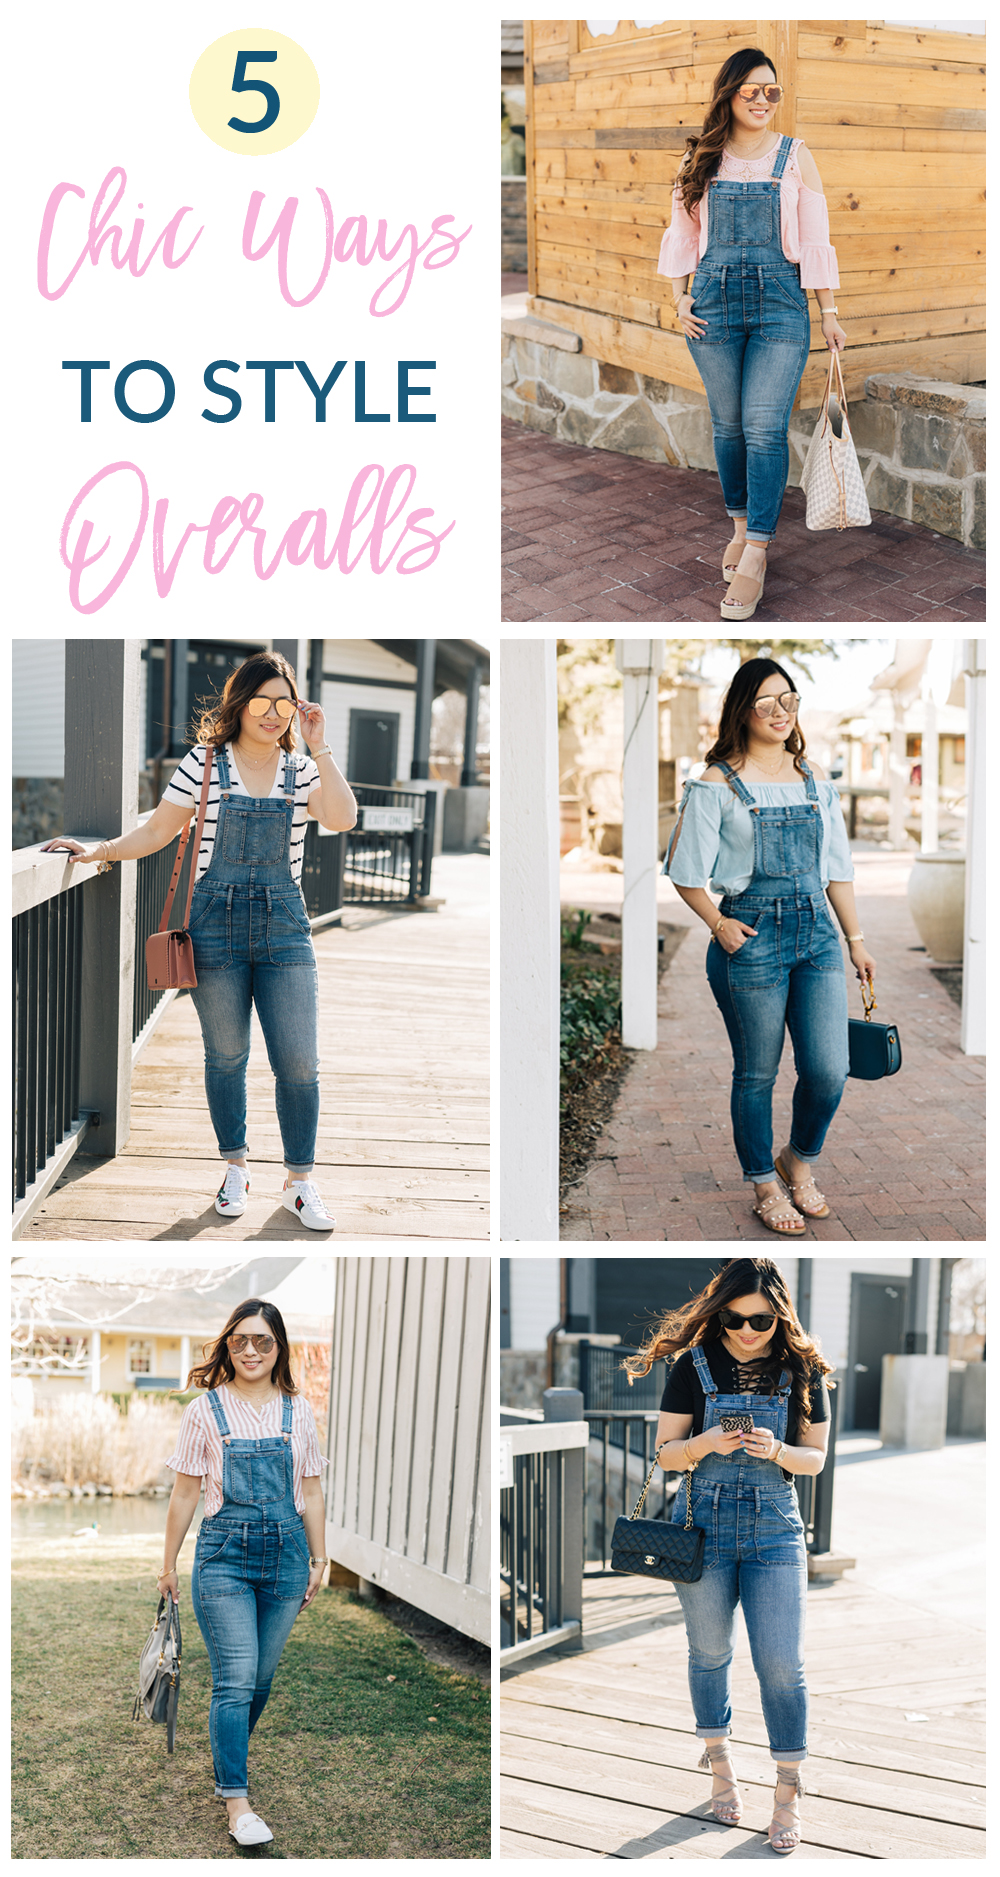 5 Chic Ways To Style Denim Overalls by popular Utah style blogger Sandy A La Mode